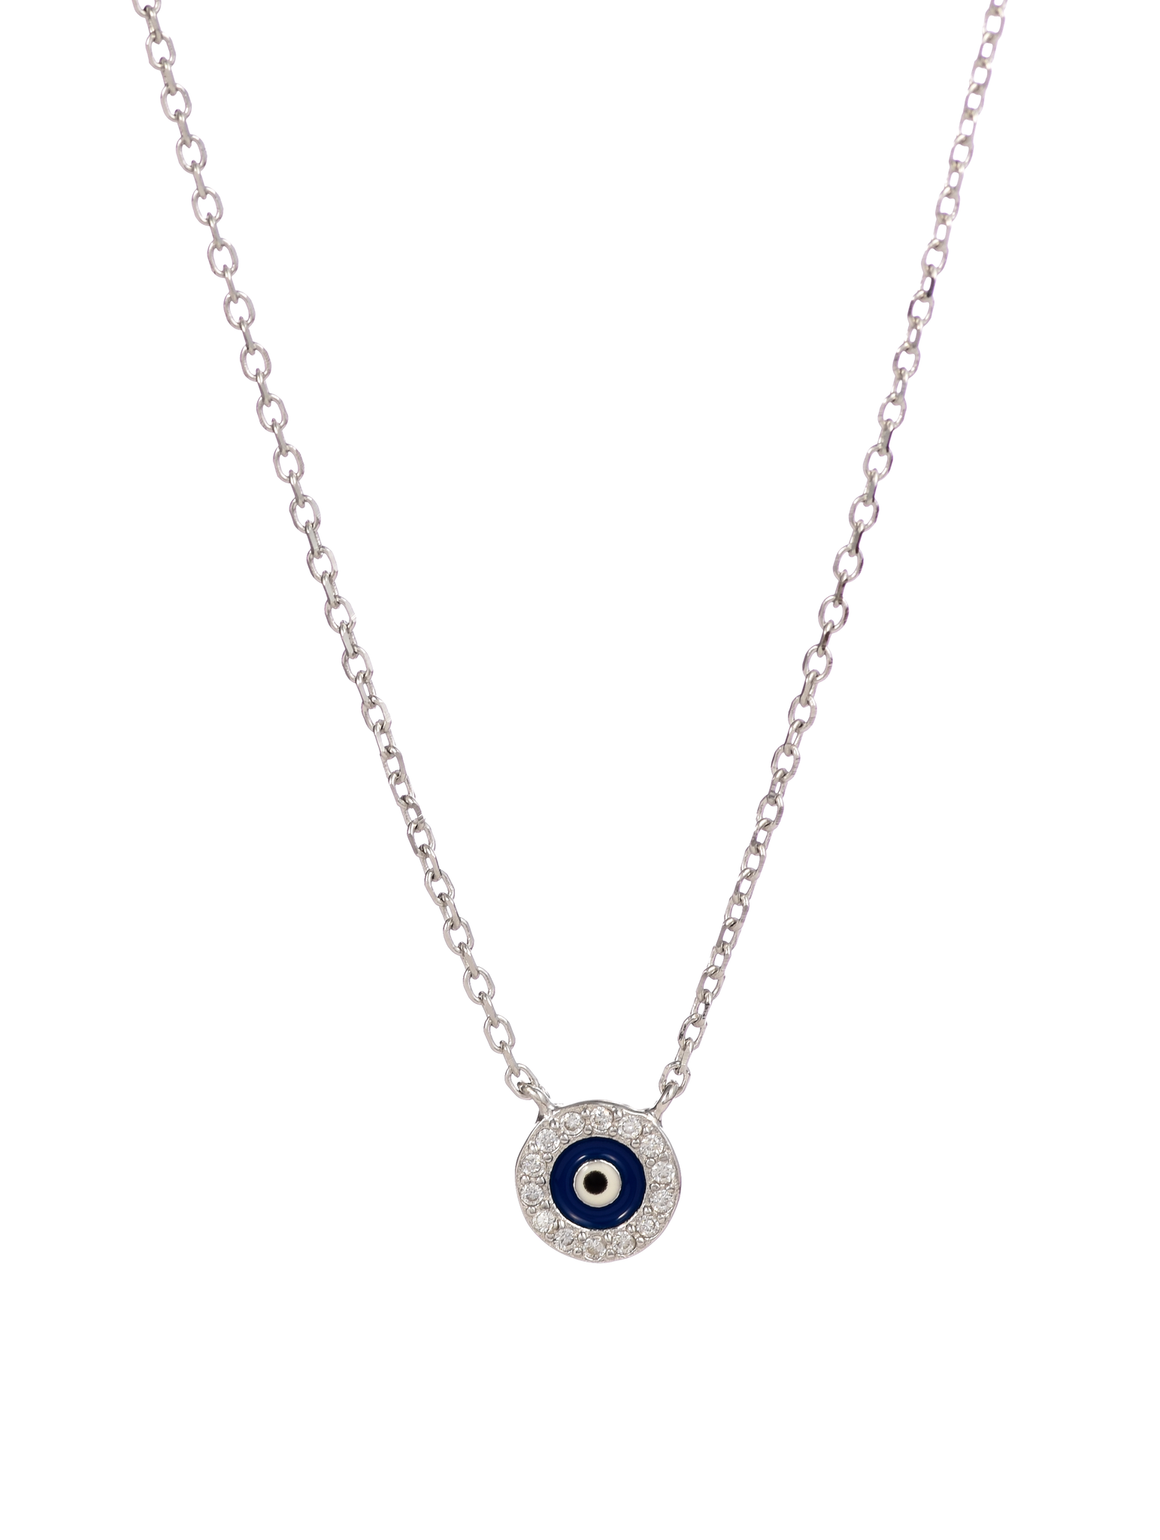 Sterling Silver with CZ Stones Evil Eye Protection Necklace - Anny Gabriella NY